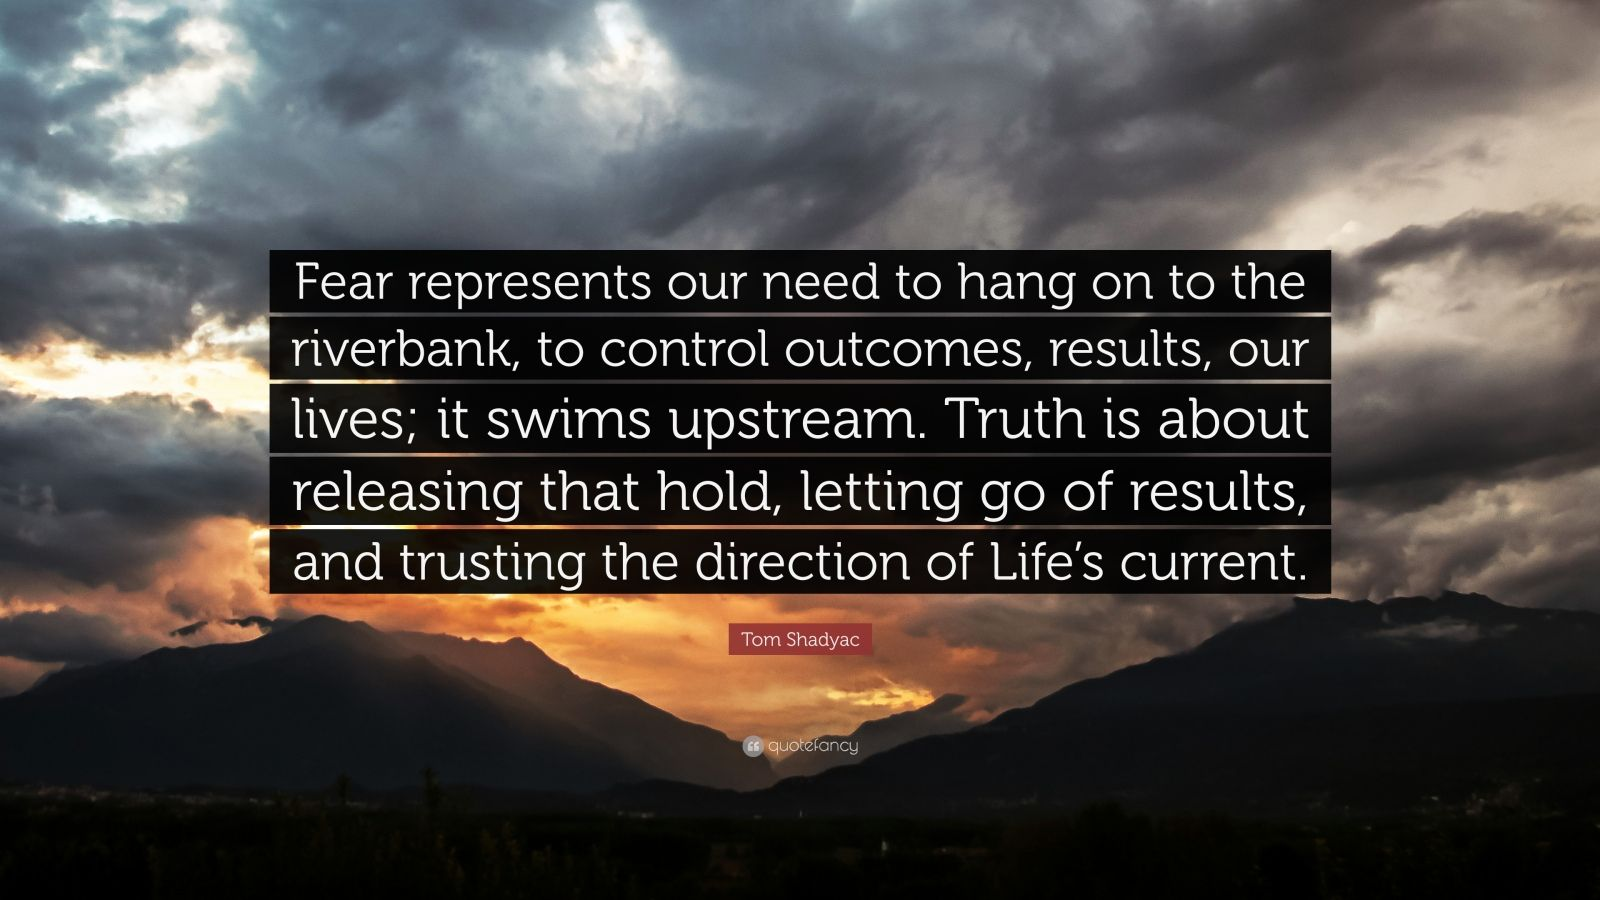 "Tom Shadyac Quote: ""Fear represents our need to hang on to the riverbank, to control outcomes, results, our lives; it swims upstream. Truth is about releasing that hold, letting go of results, and trusting the direction of Life's current."""